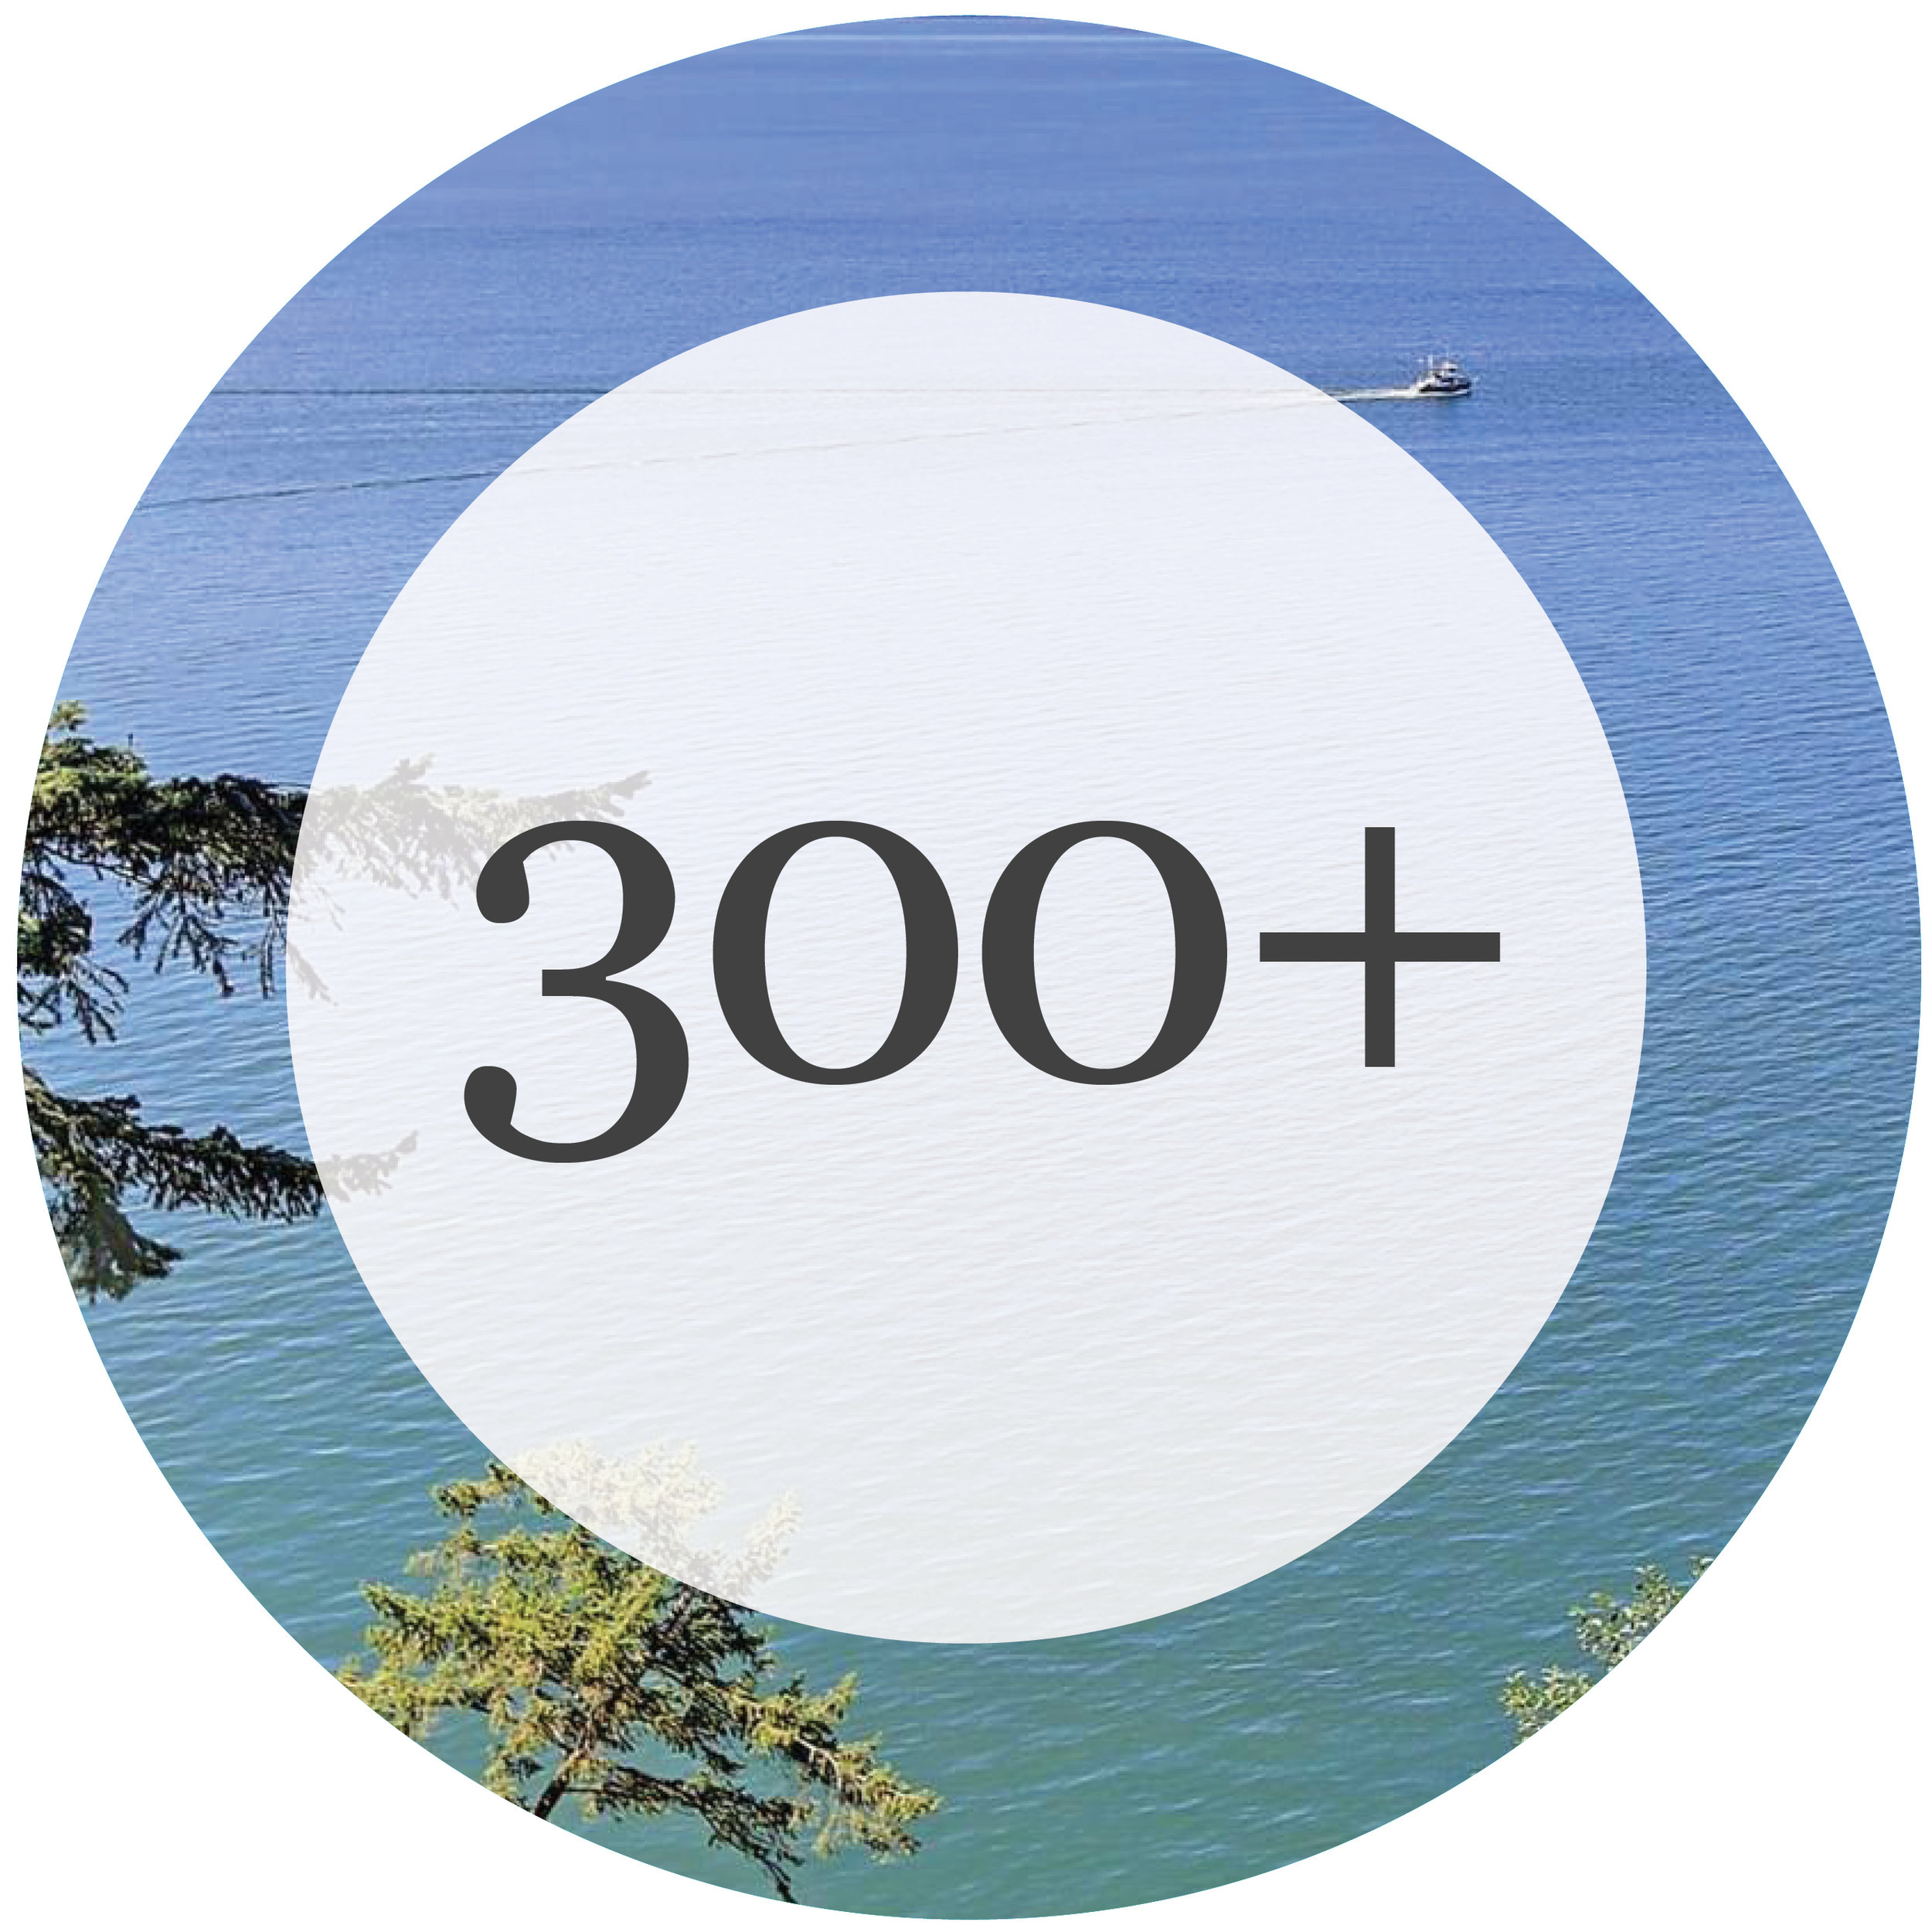 Number of islands in the Puget Sound